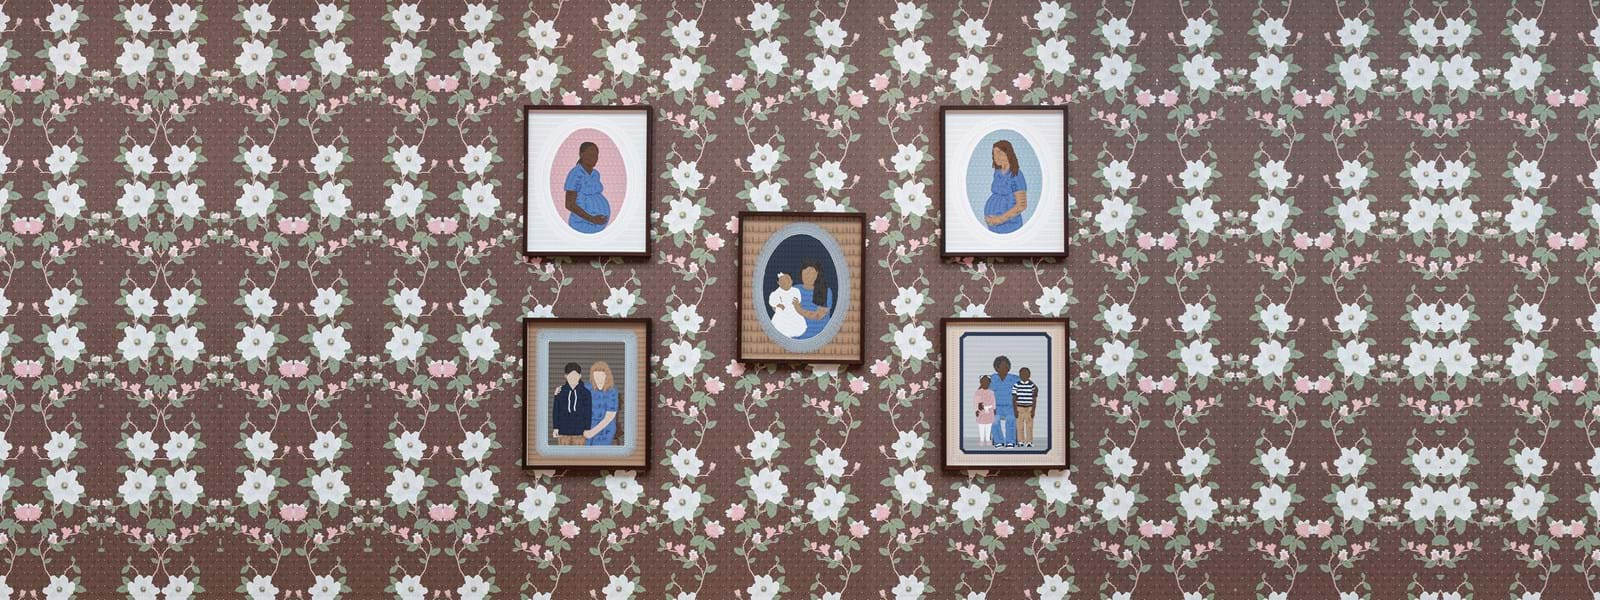 Five framed images hanging on a flower print wall.